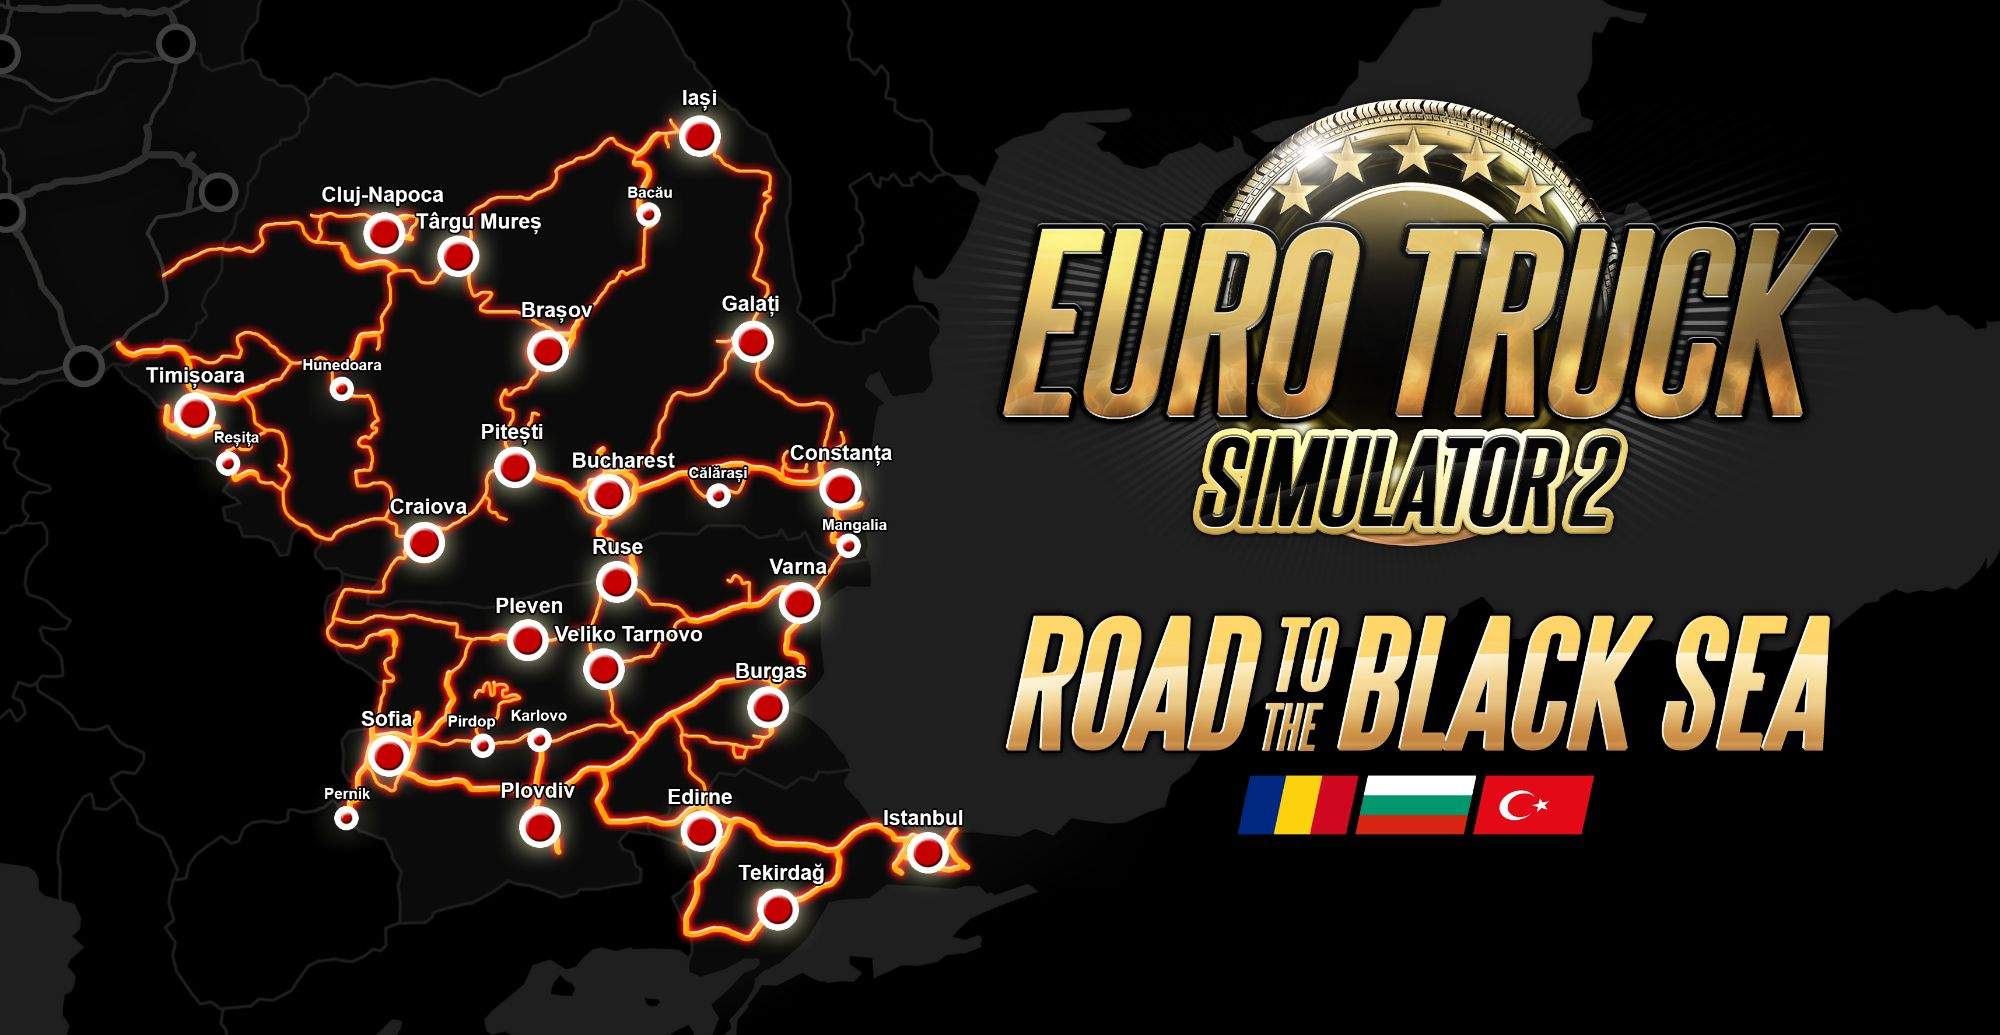 Clickable image showing the map for Euro Truck Simulator 2: Road to the Black Sea